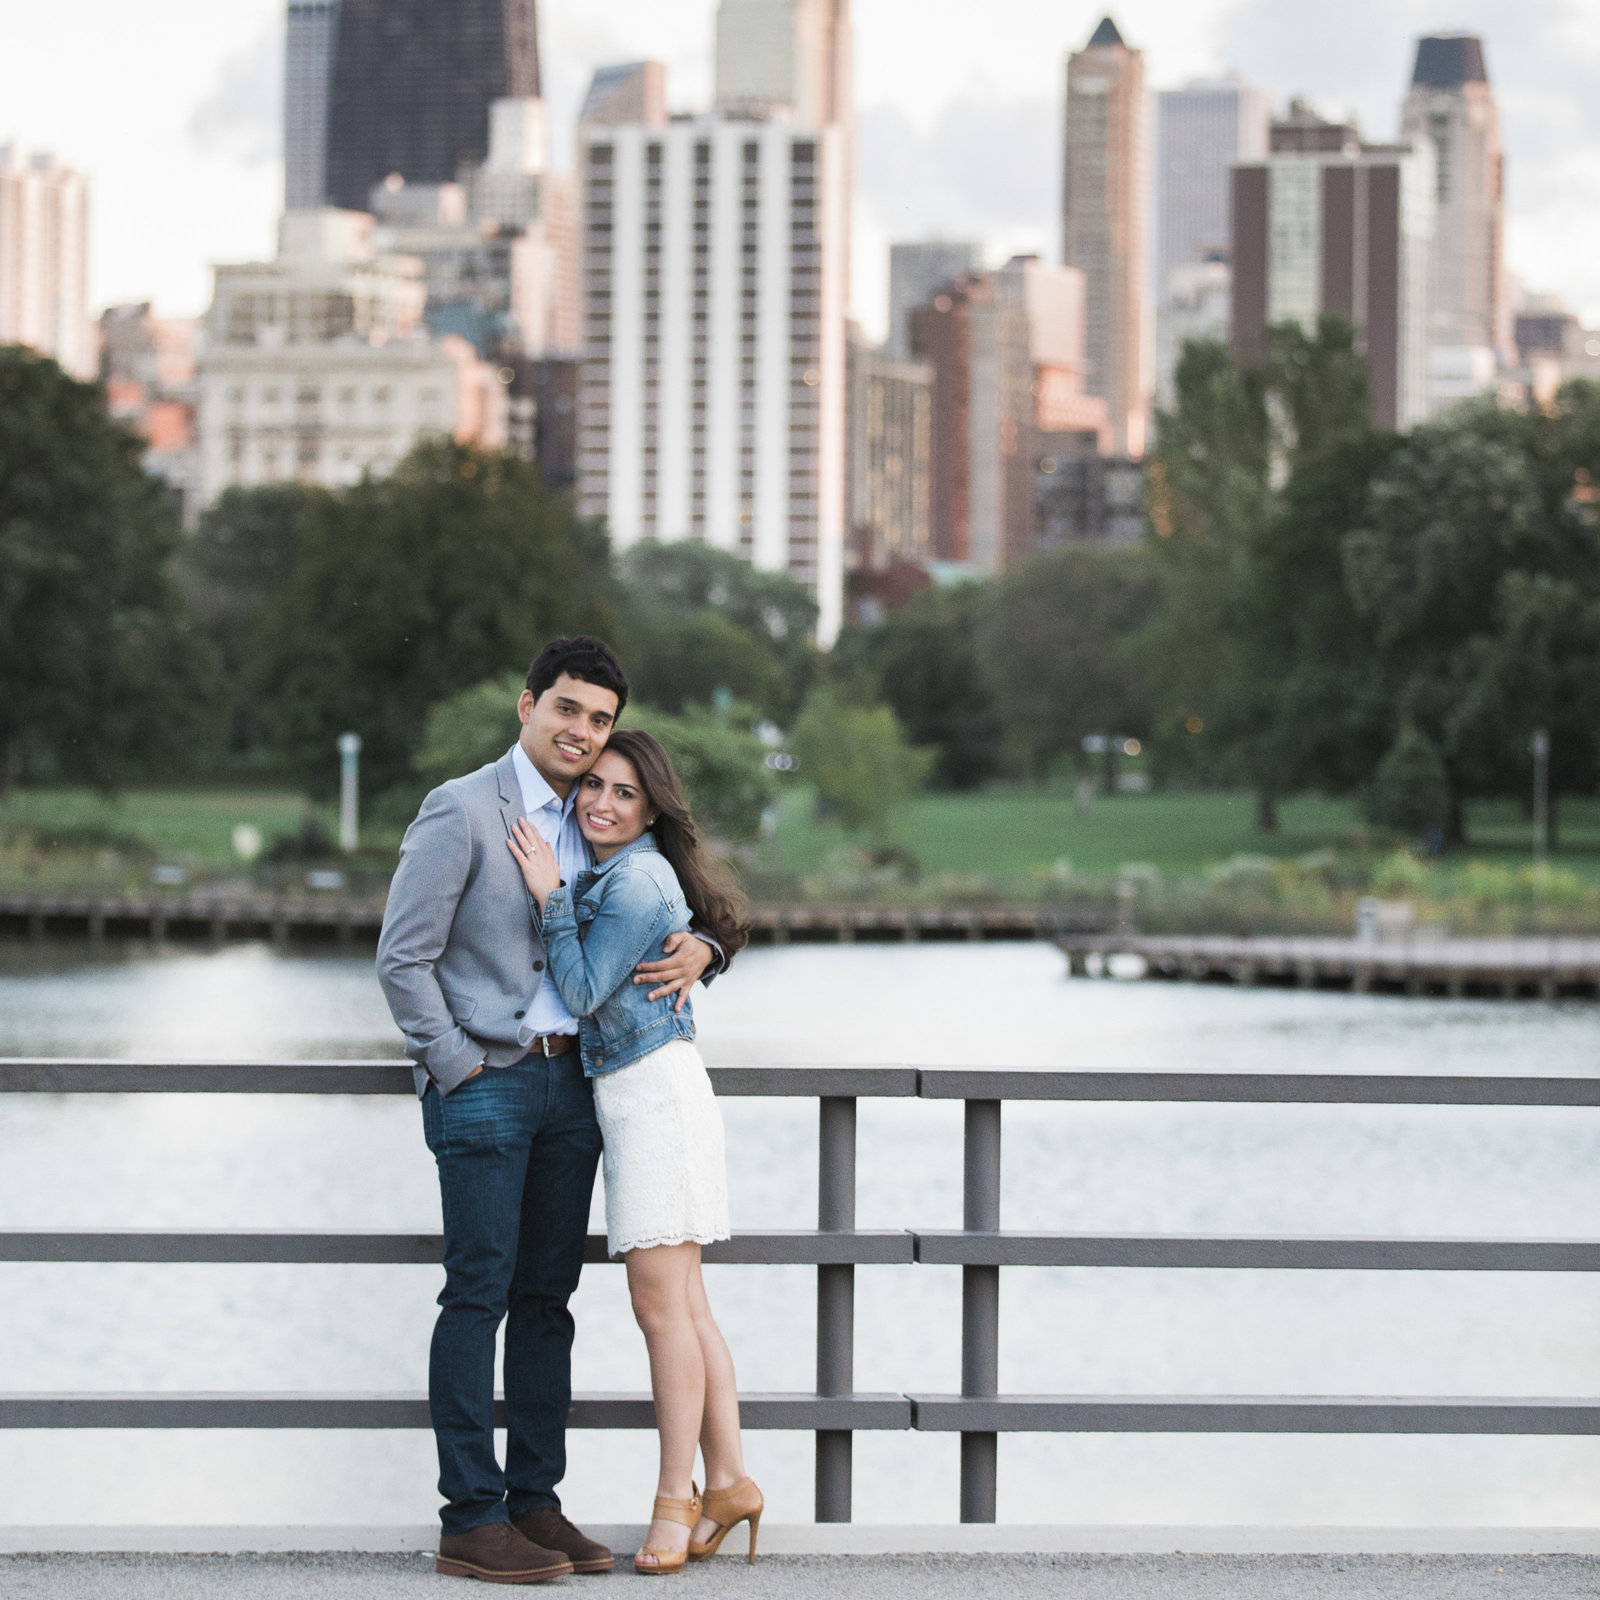 chicago engagement pictures at lincoln park zoo photographer-4356-2